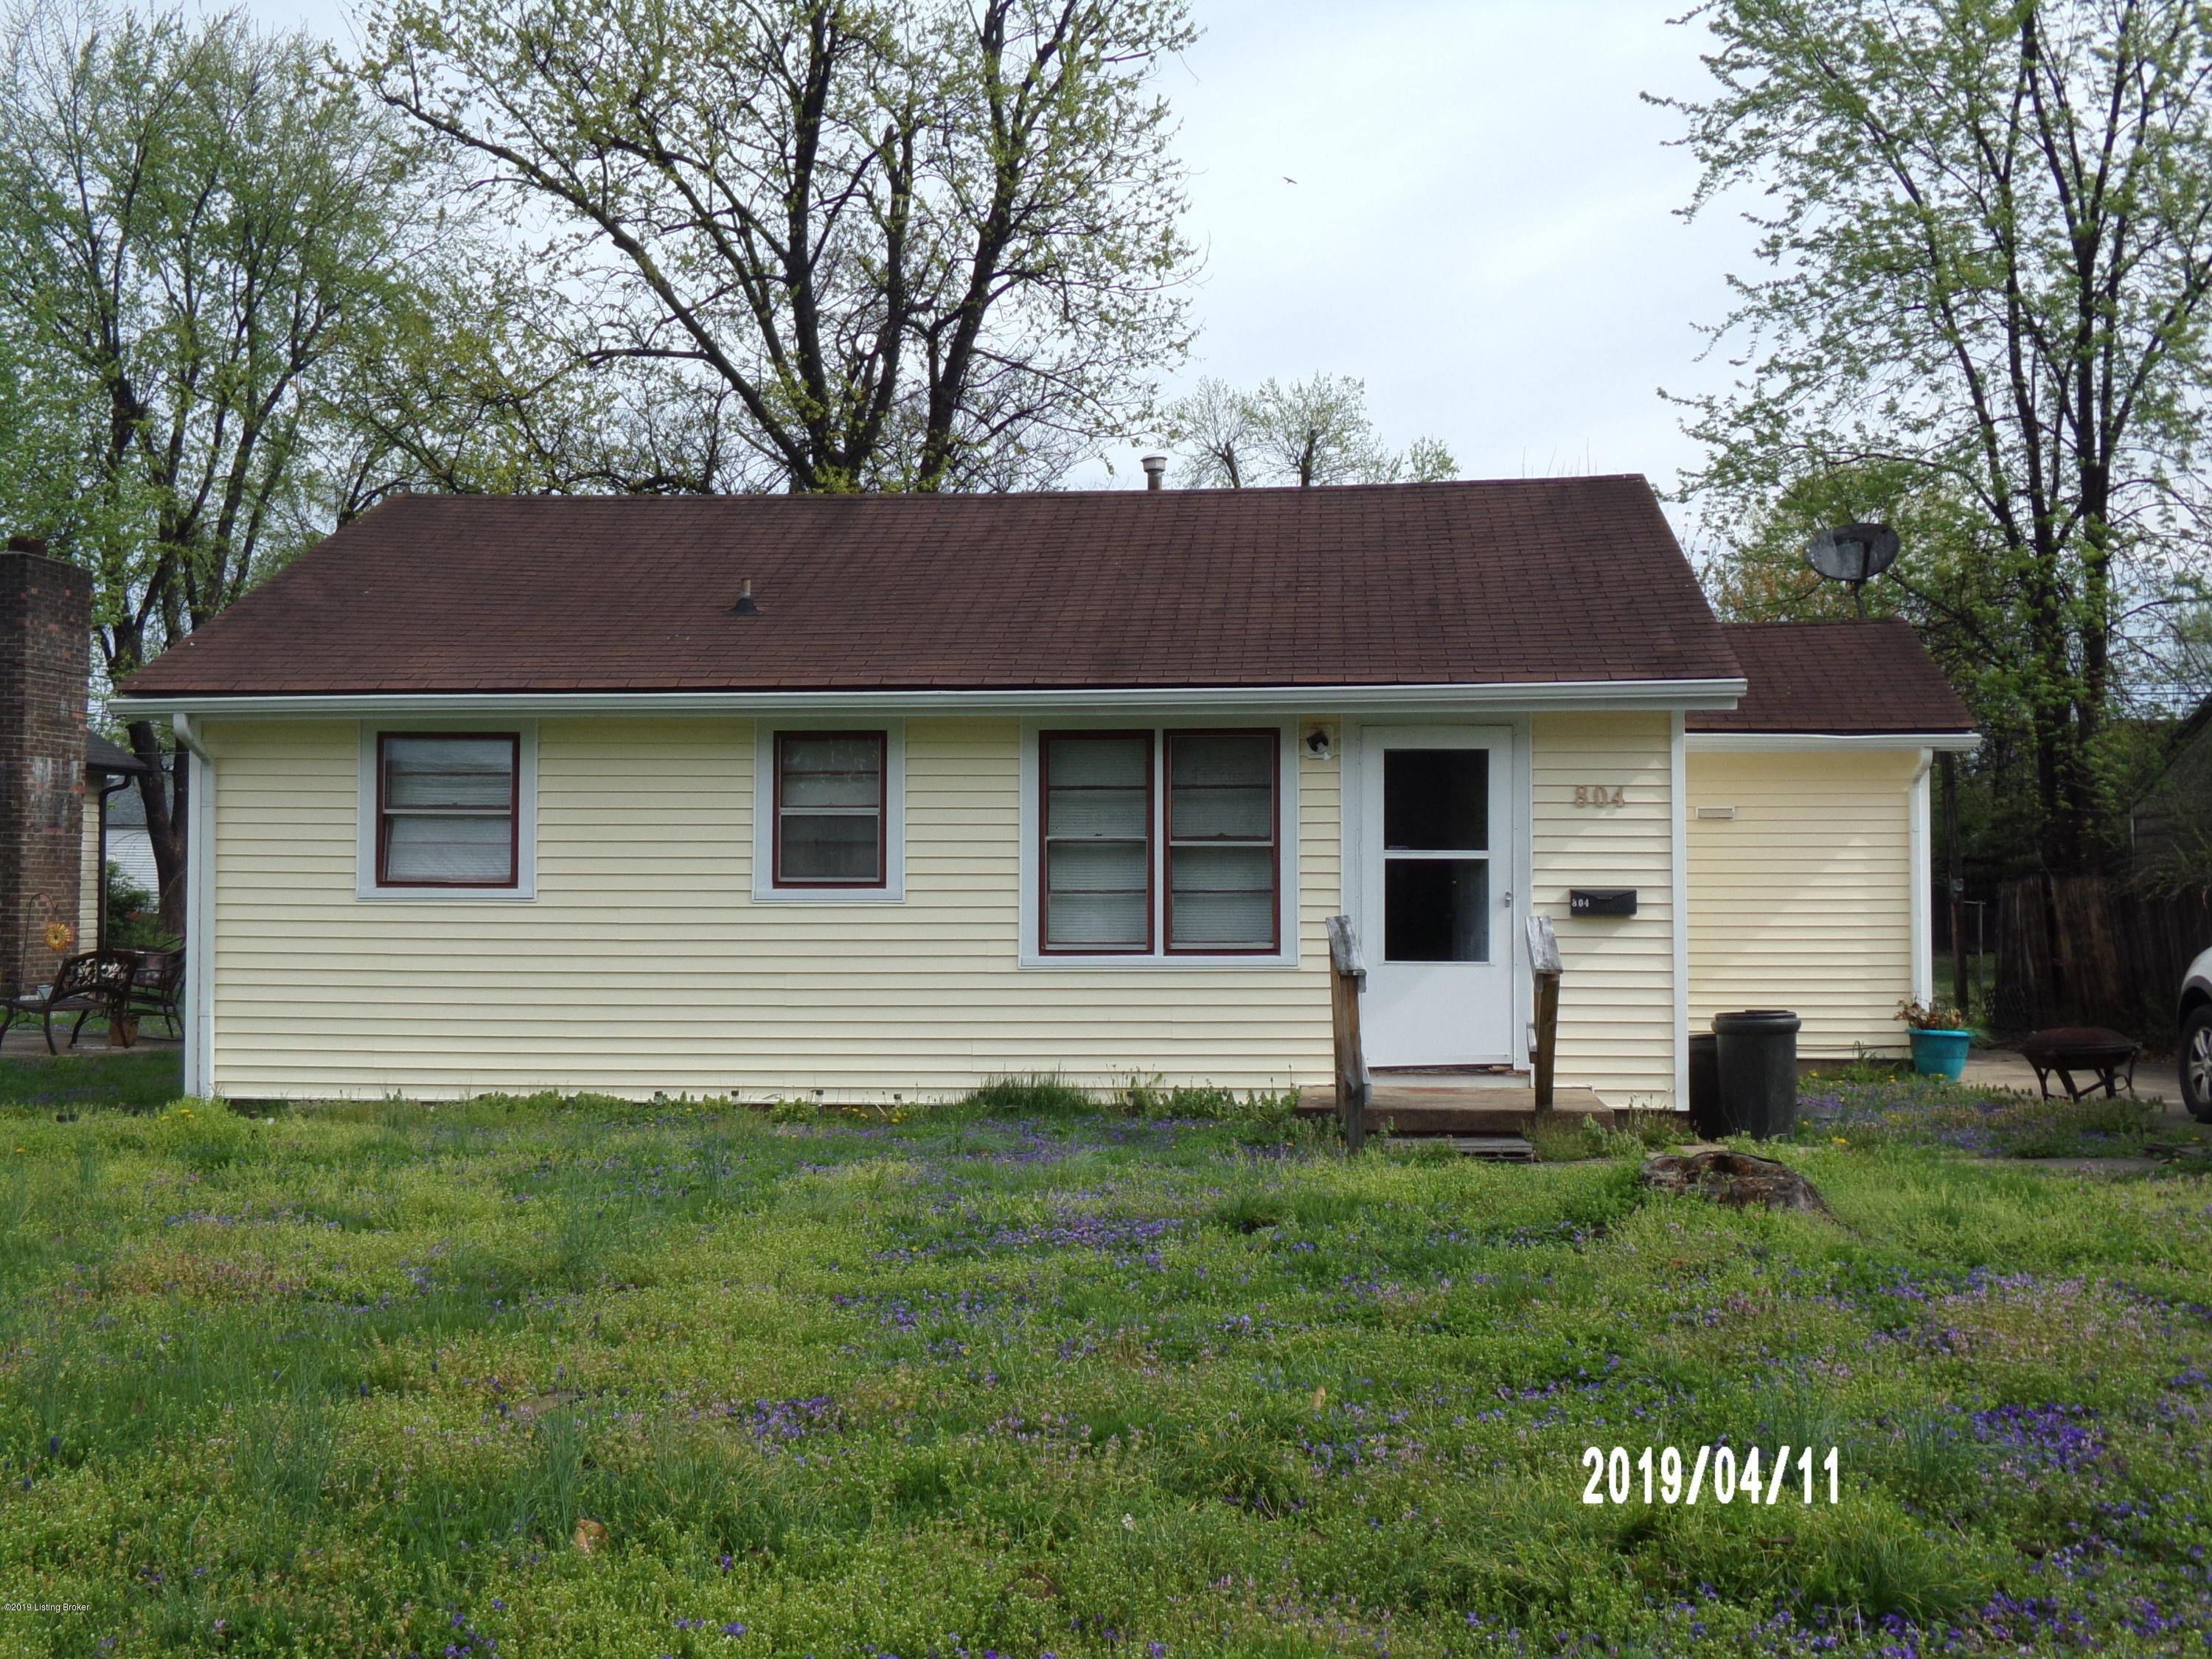 804 Bartley Ave, Bardstown, Kentucky 40004, 2 Bedrooms Bedrooms, 5 Rooms Rooms,1 BathroomBathrooms,Residential,For Sale,Bartley,1529218